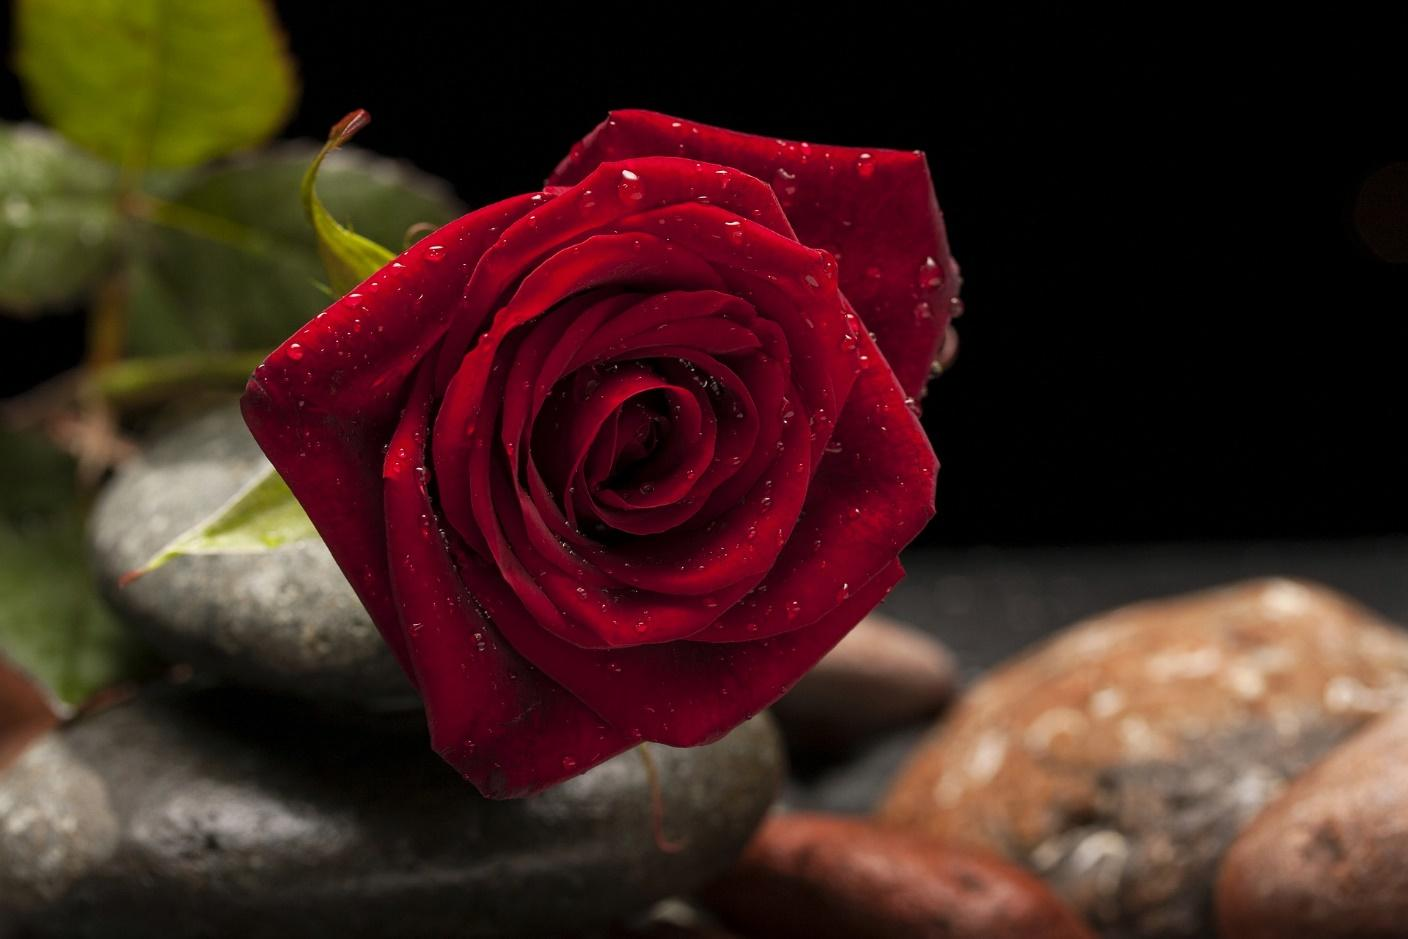 Fill your house with positivity and love using rose petals.